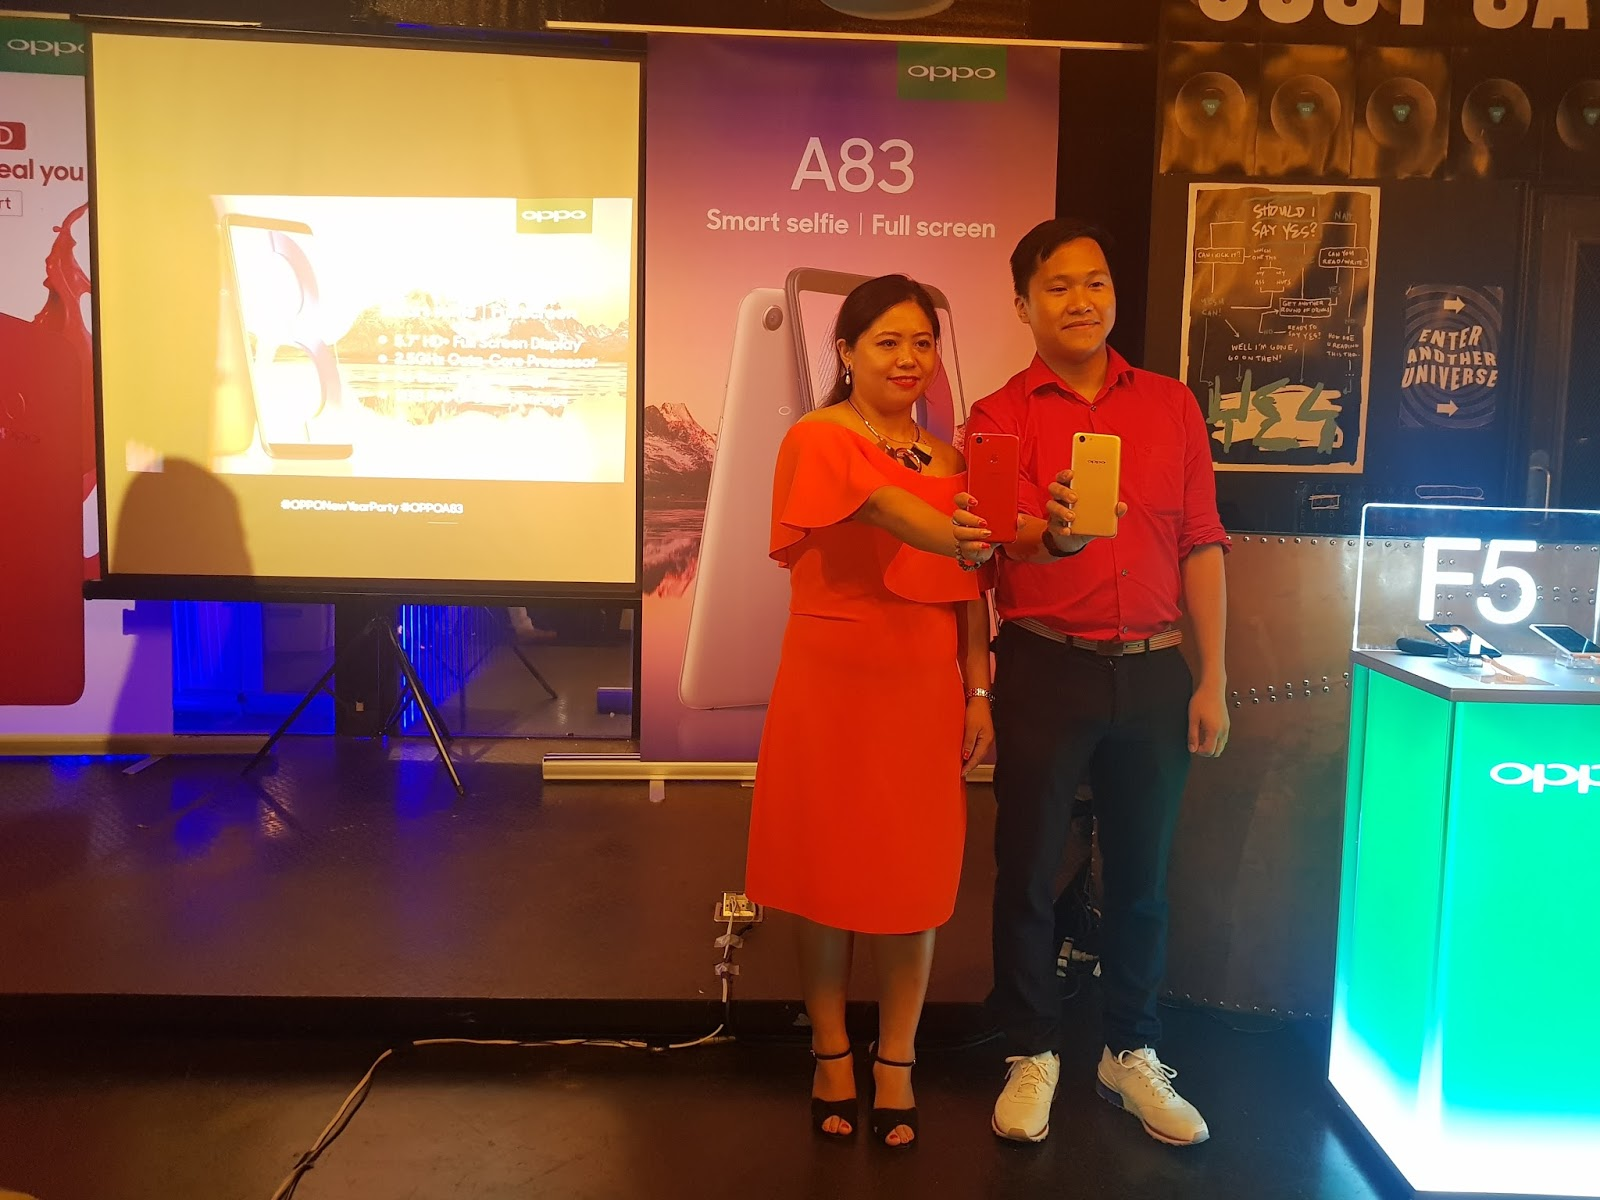 OPPO A83 Specs and Price in the Philippines